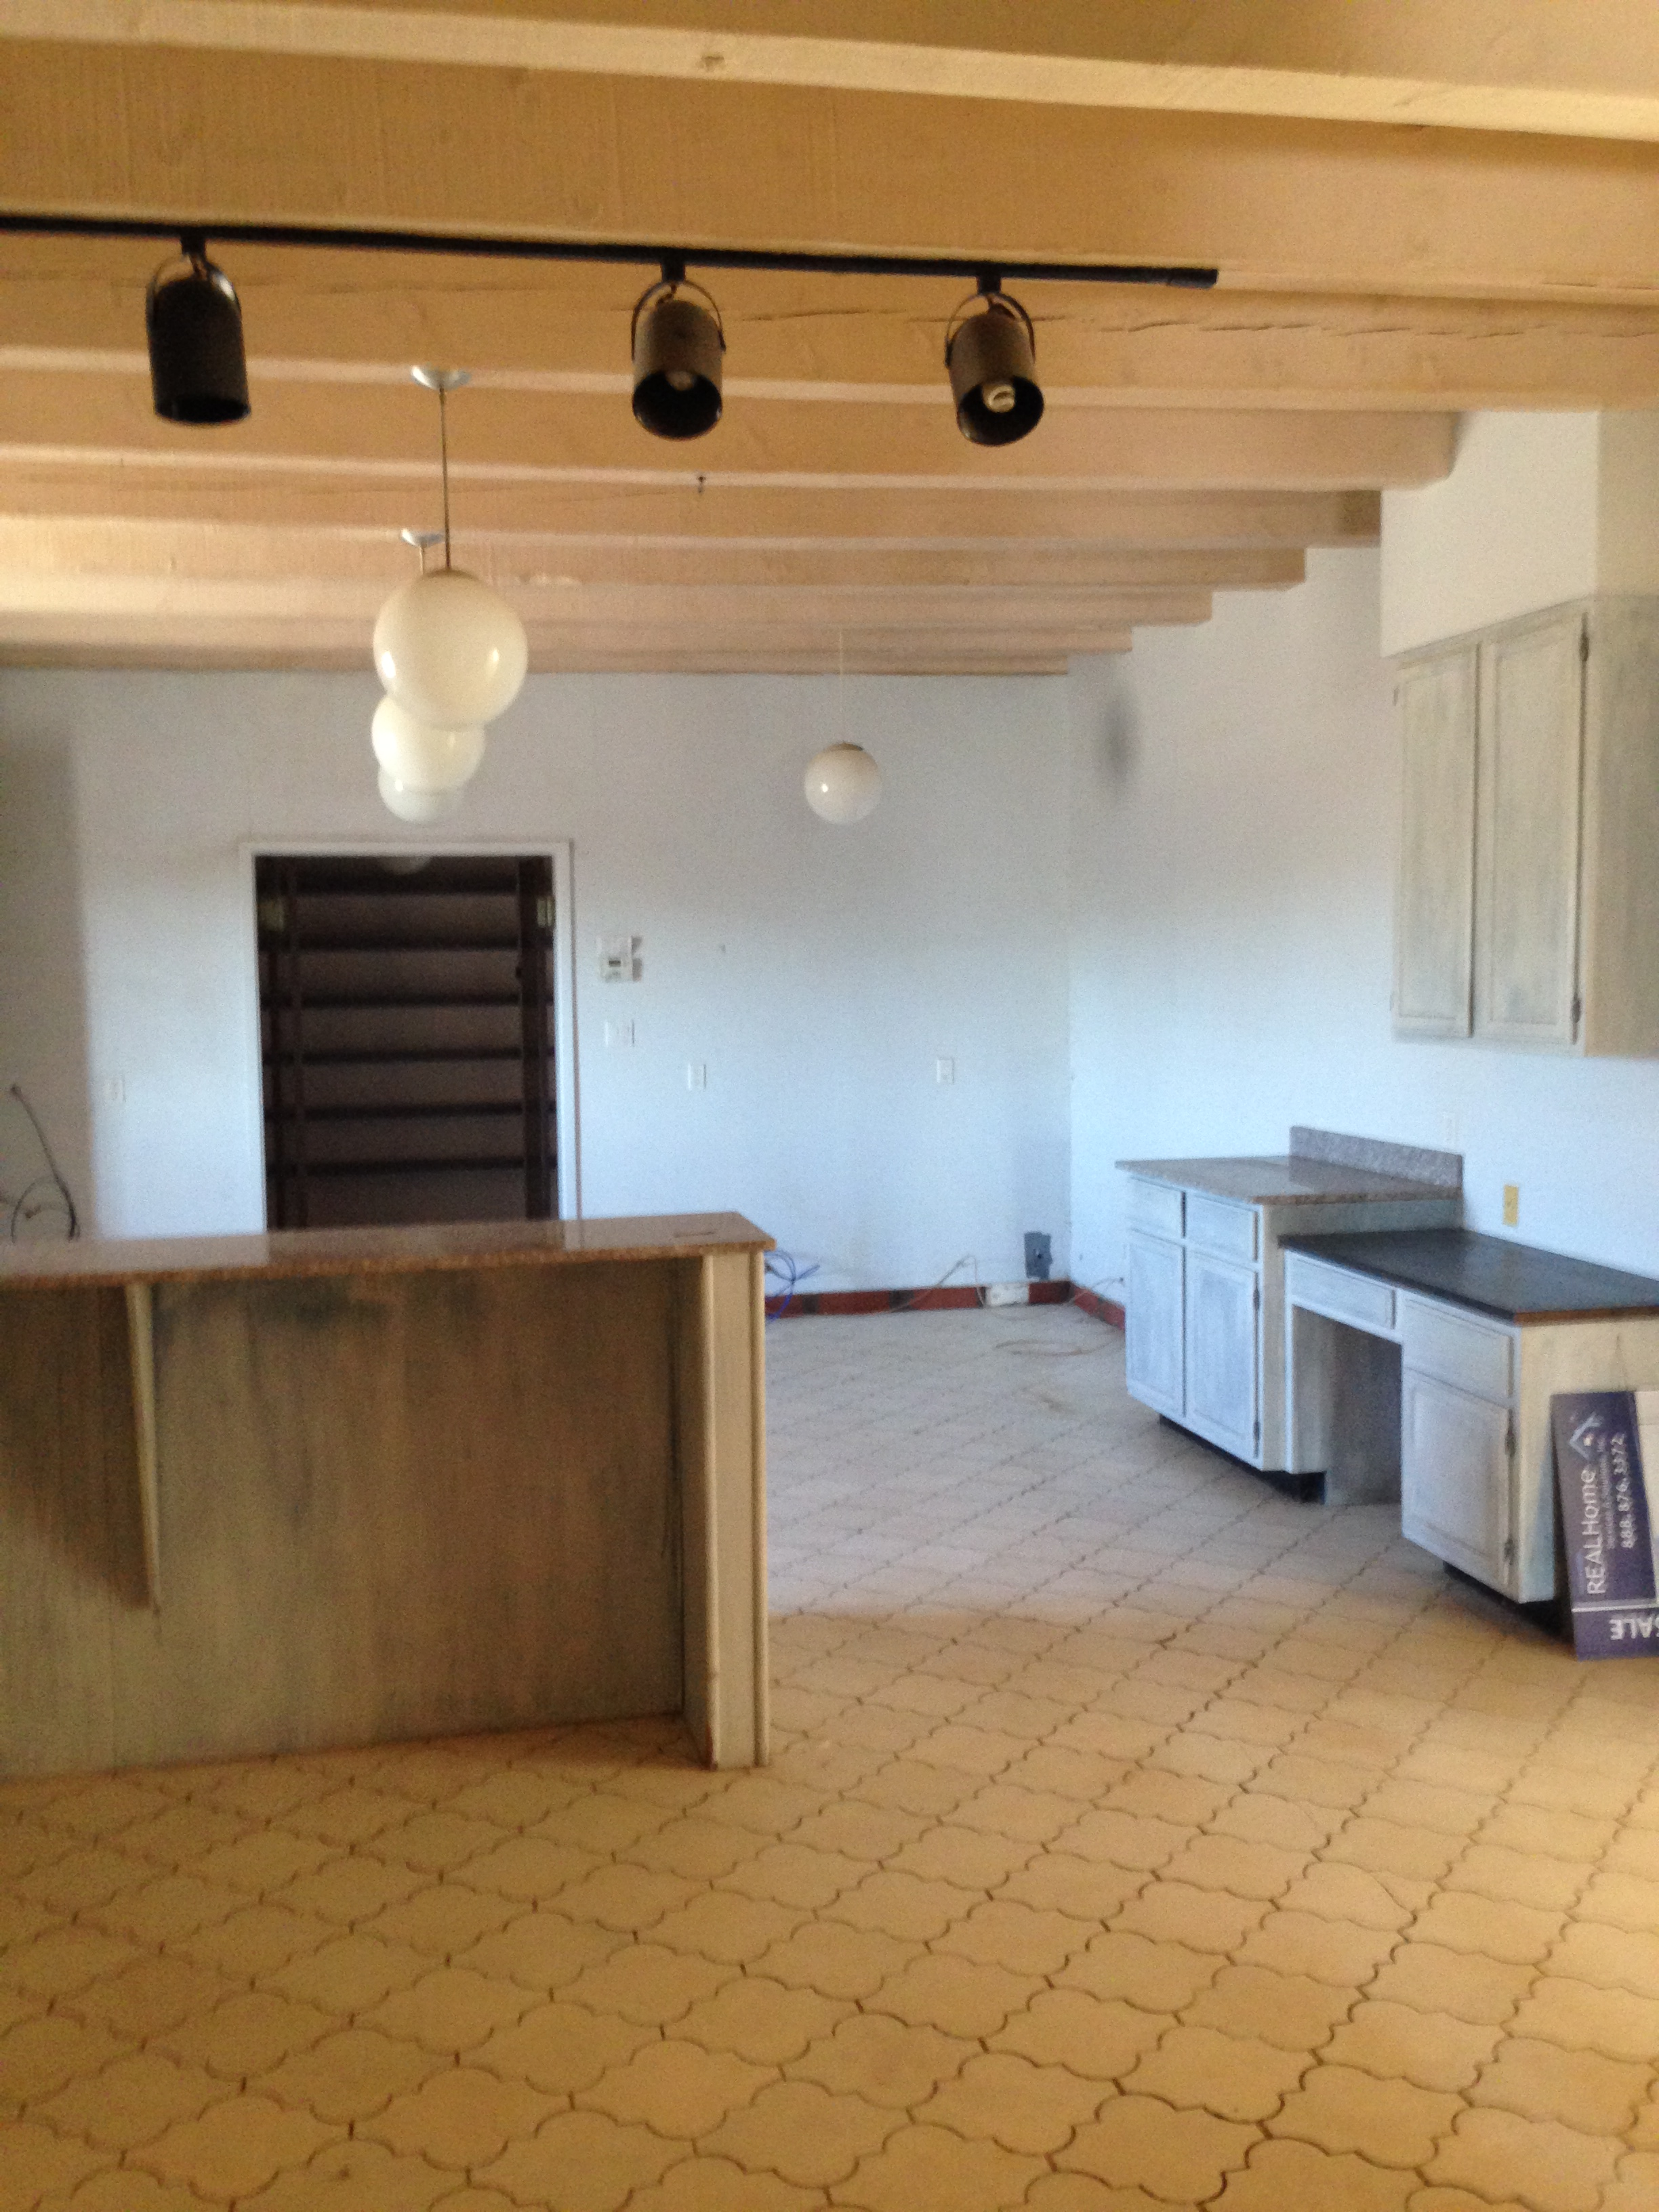 Kitchen at first look